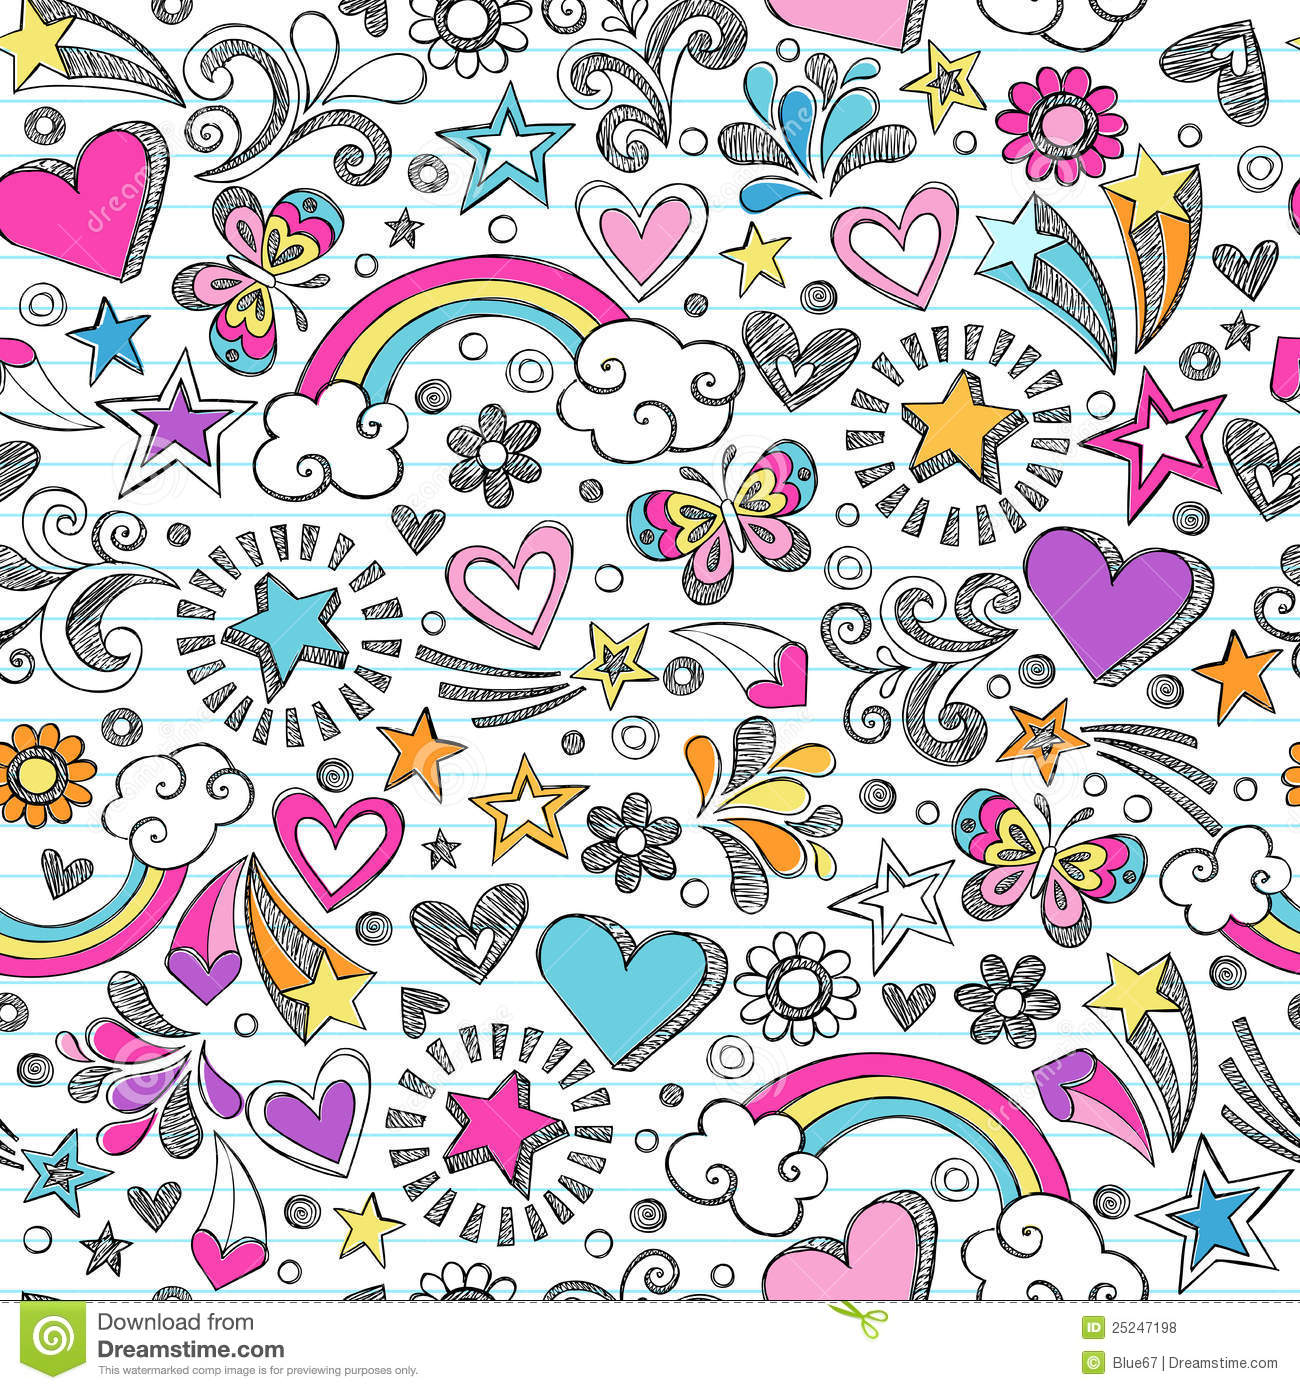 School clipart patterns royalty free School Patterns Clipart - Clipart Kid royalty free